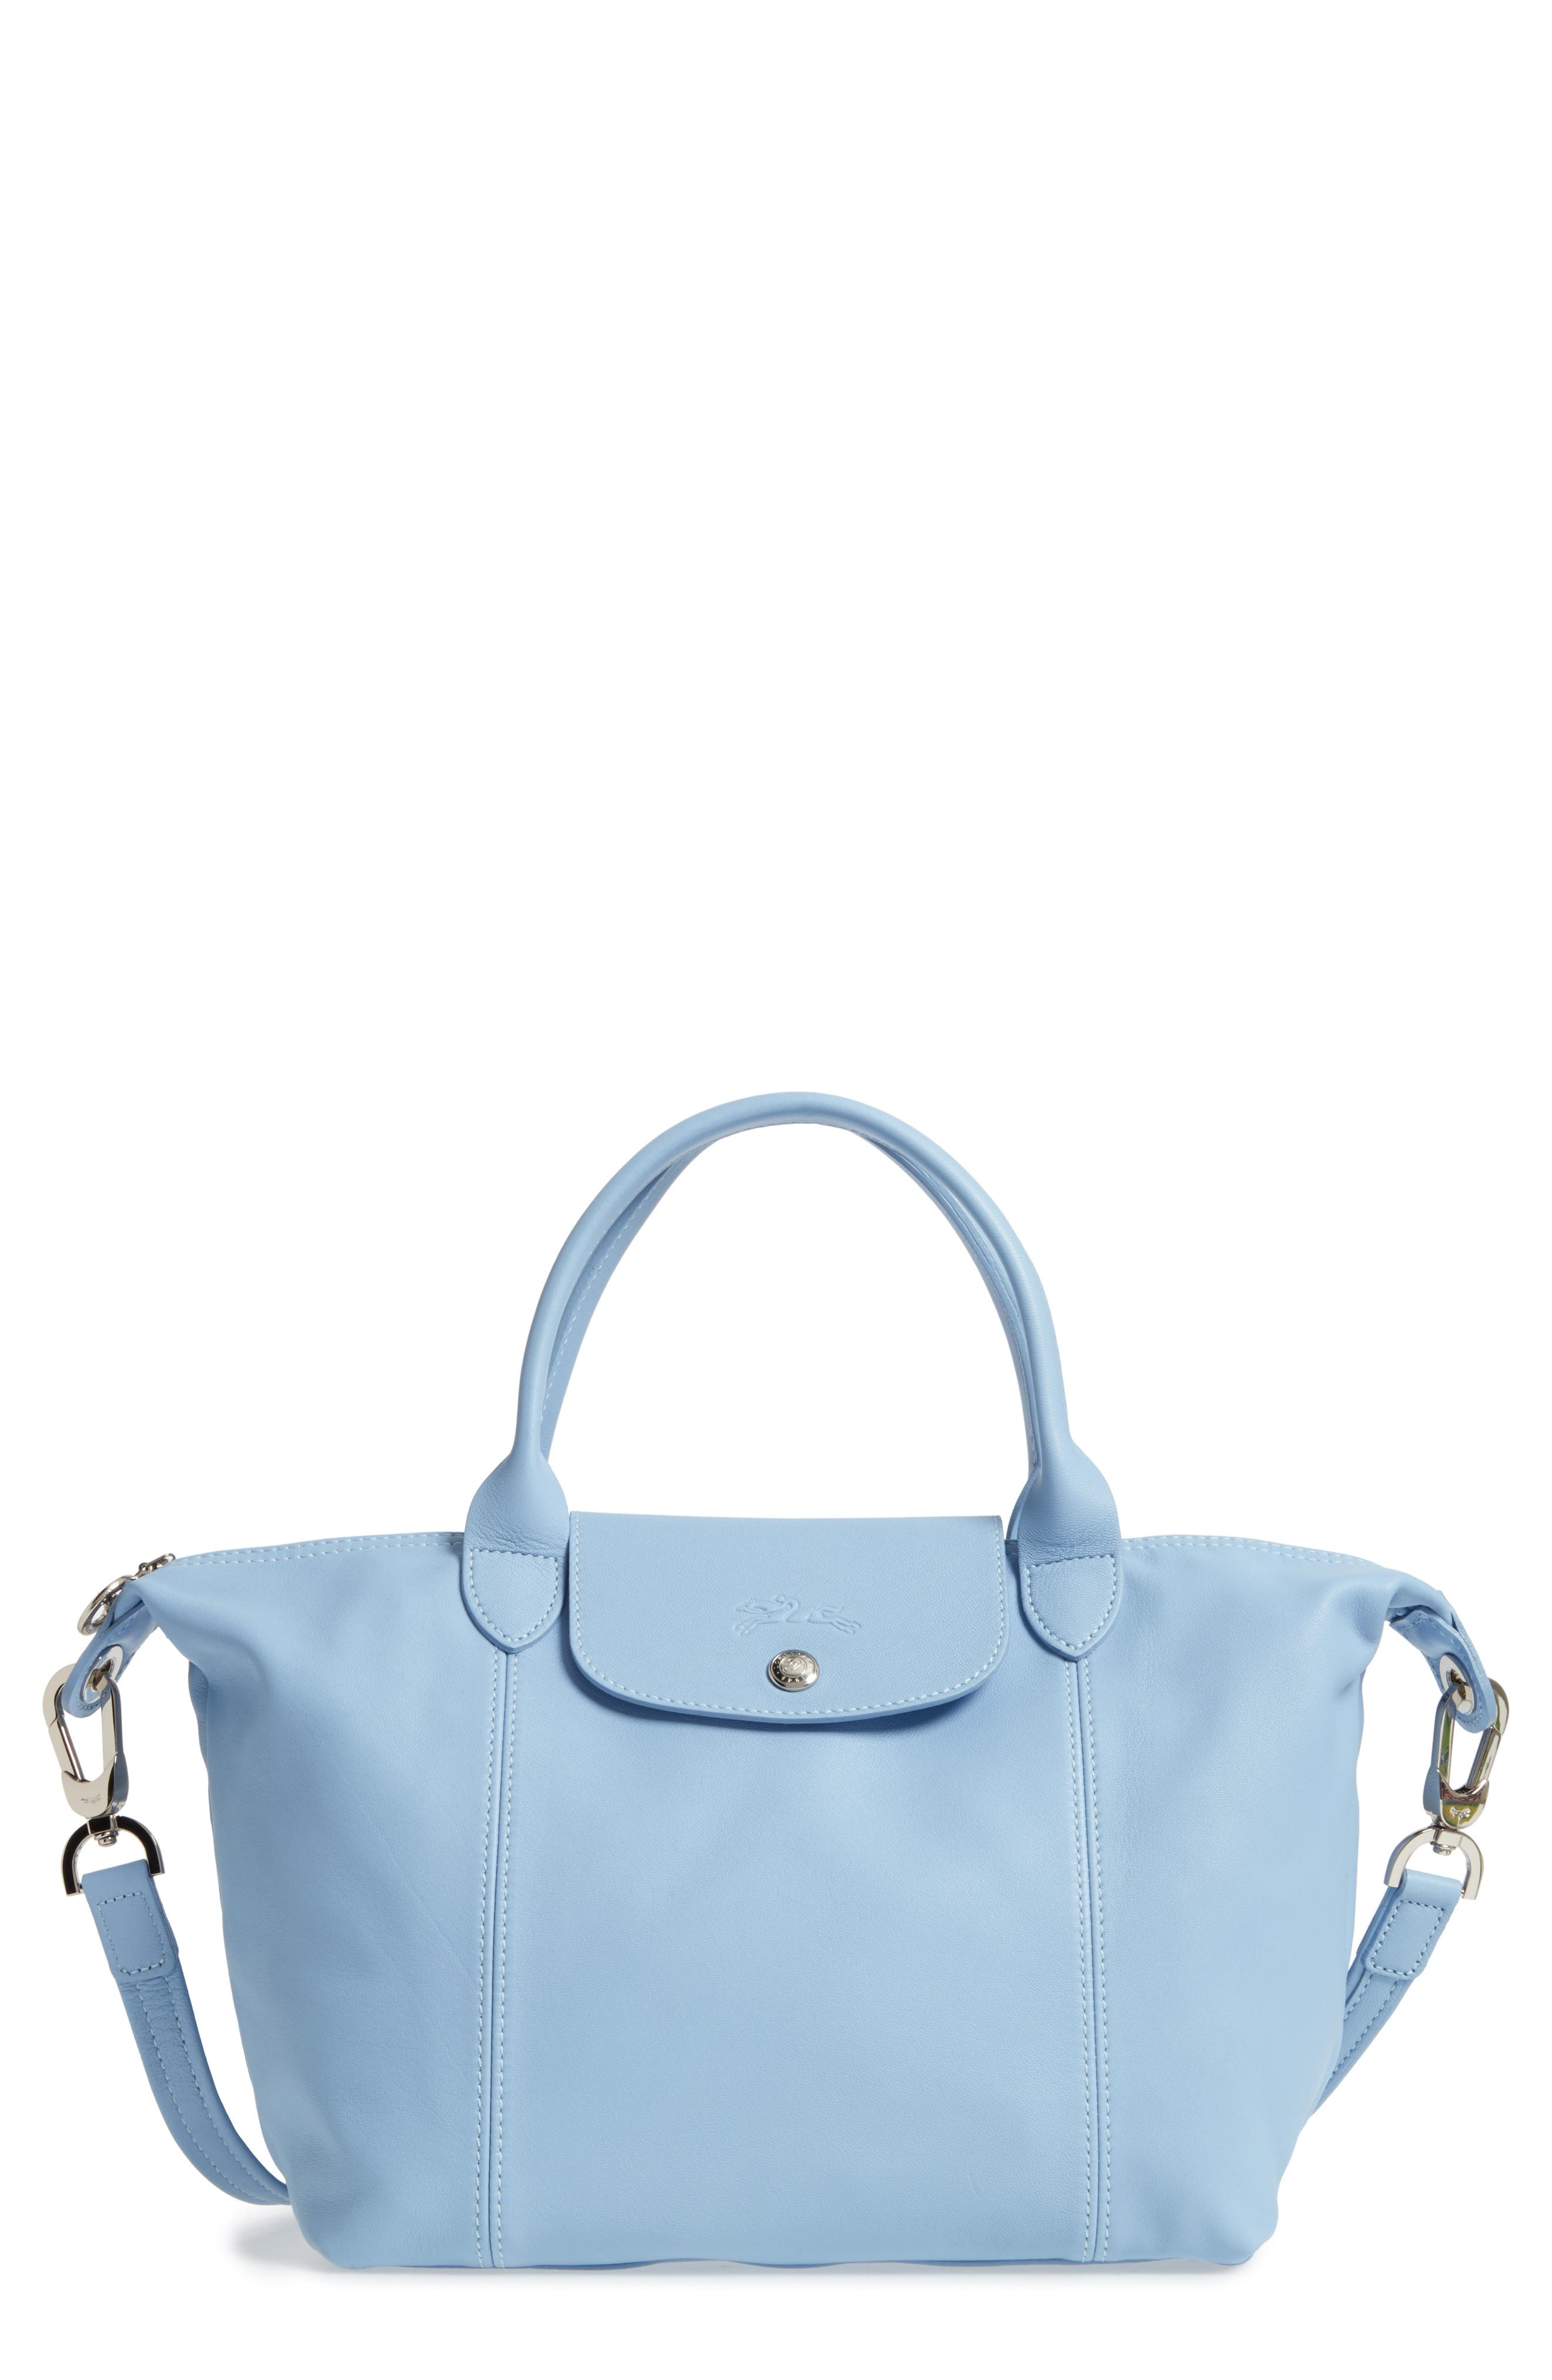 Small 'Le Pliage Cuir' Leather Top Handle Tote,                             Main thumbnail 4, color,